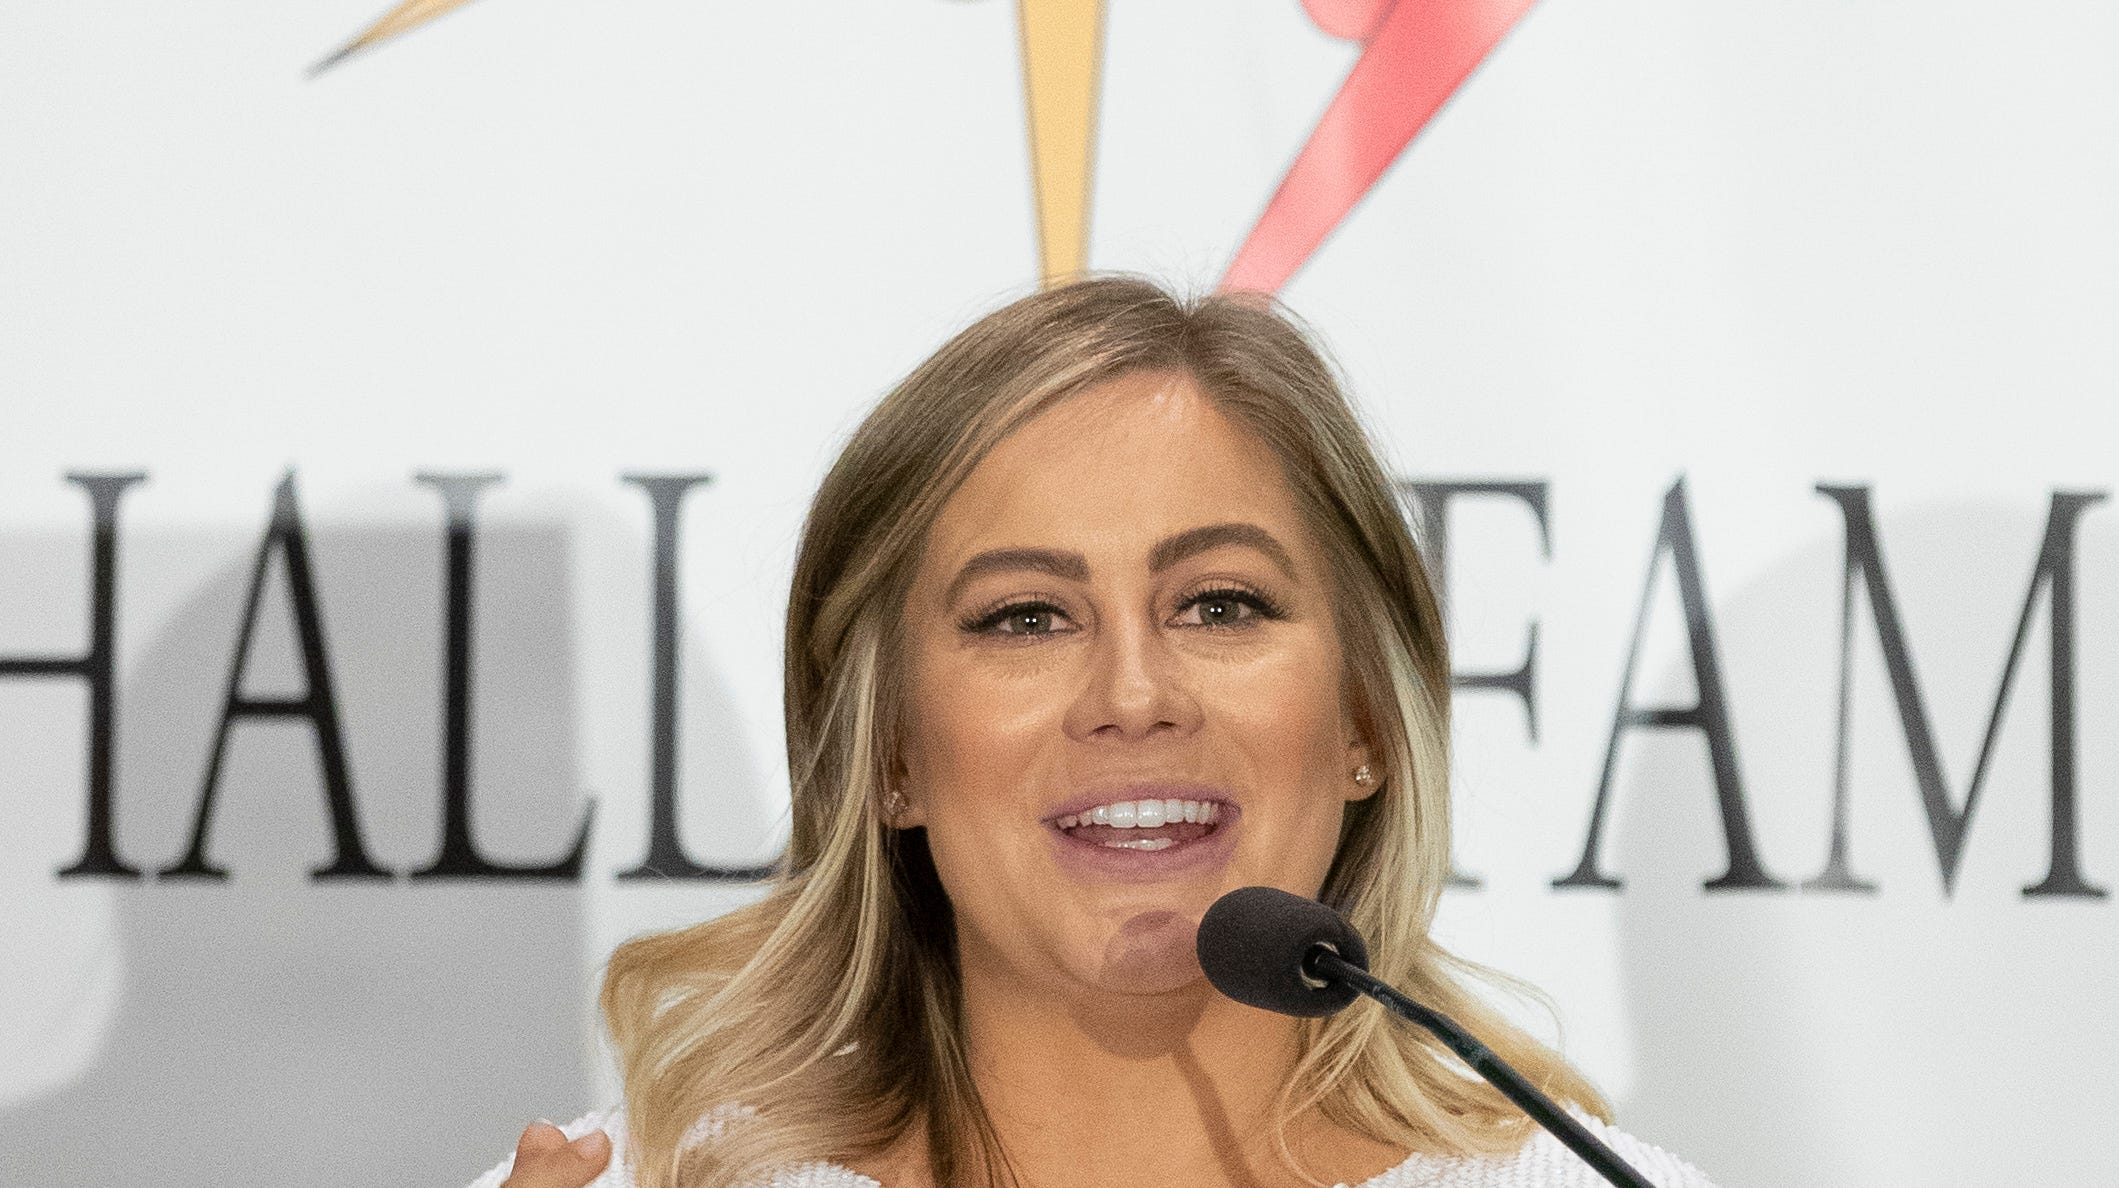 Olympic gymnast Shawn Johnson hits a back flip while pregnant: 'Baby's first flip'